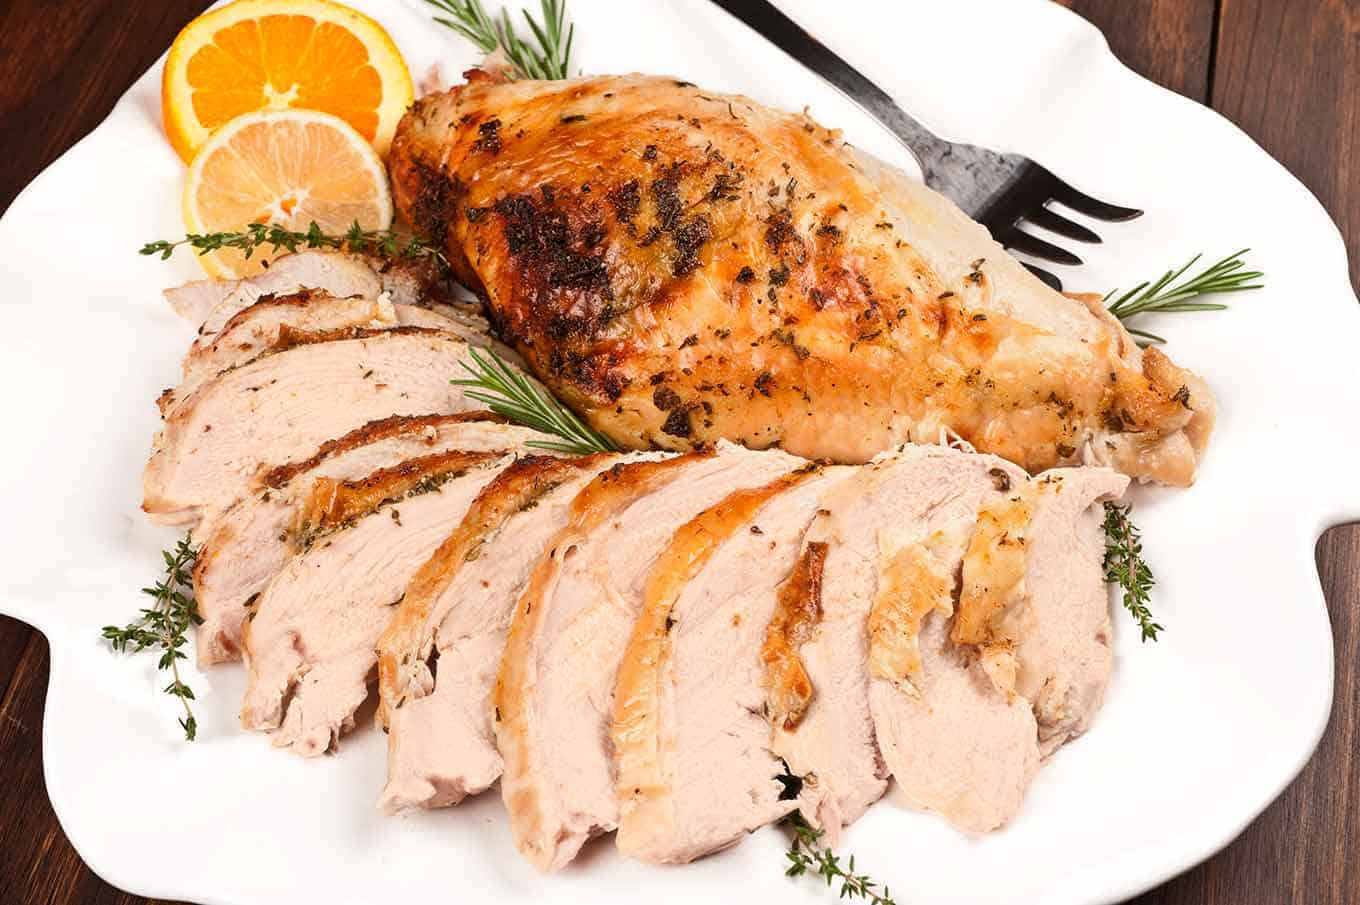 Platter of roasted turkey breast with citrus herb butter, serving fork and rosemary and thyme garnish